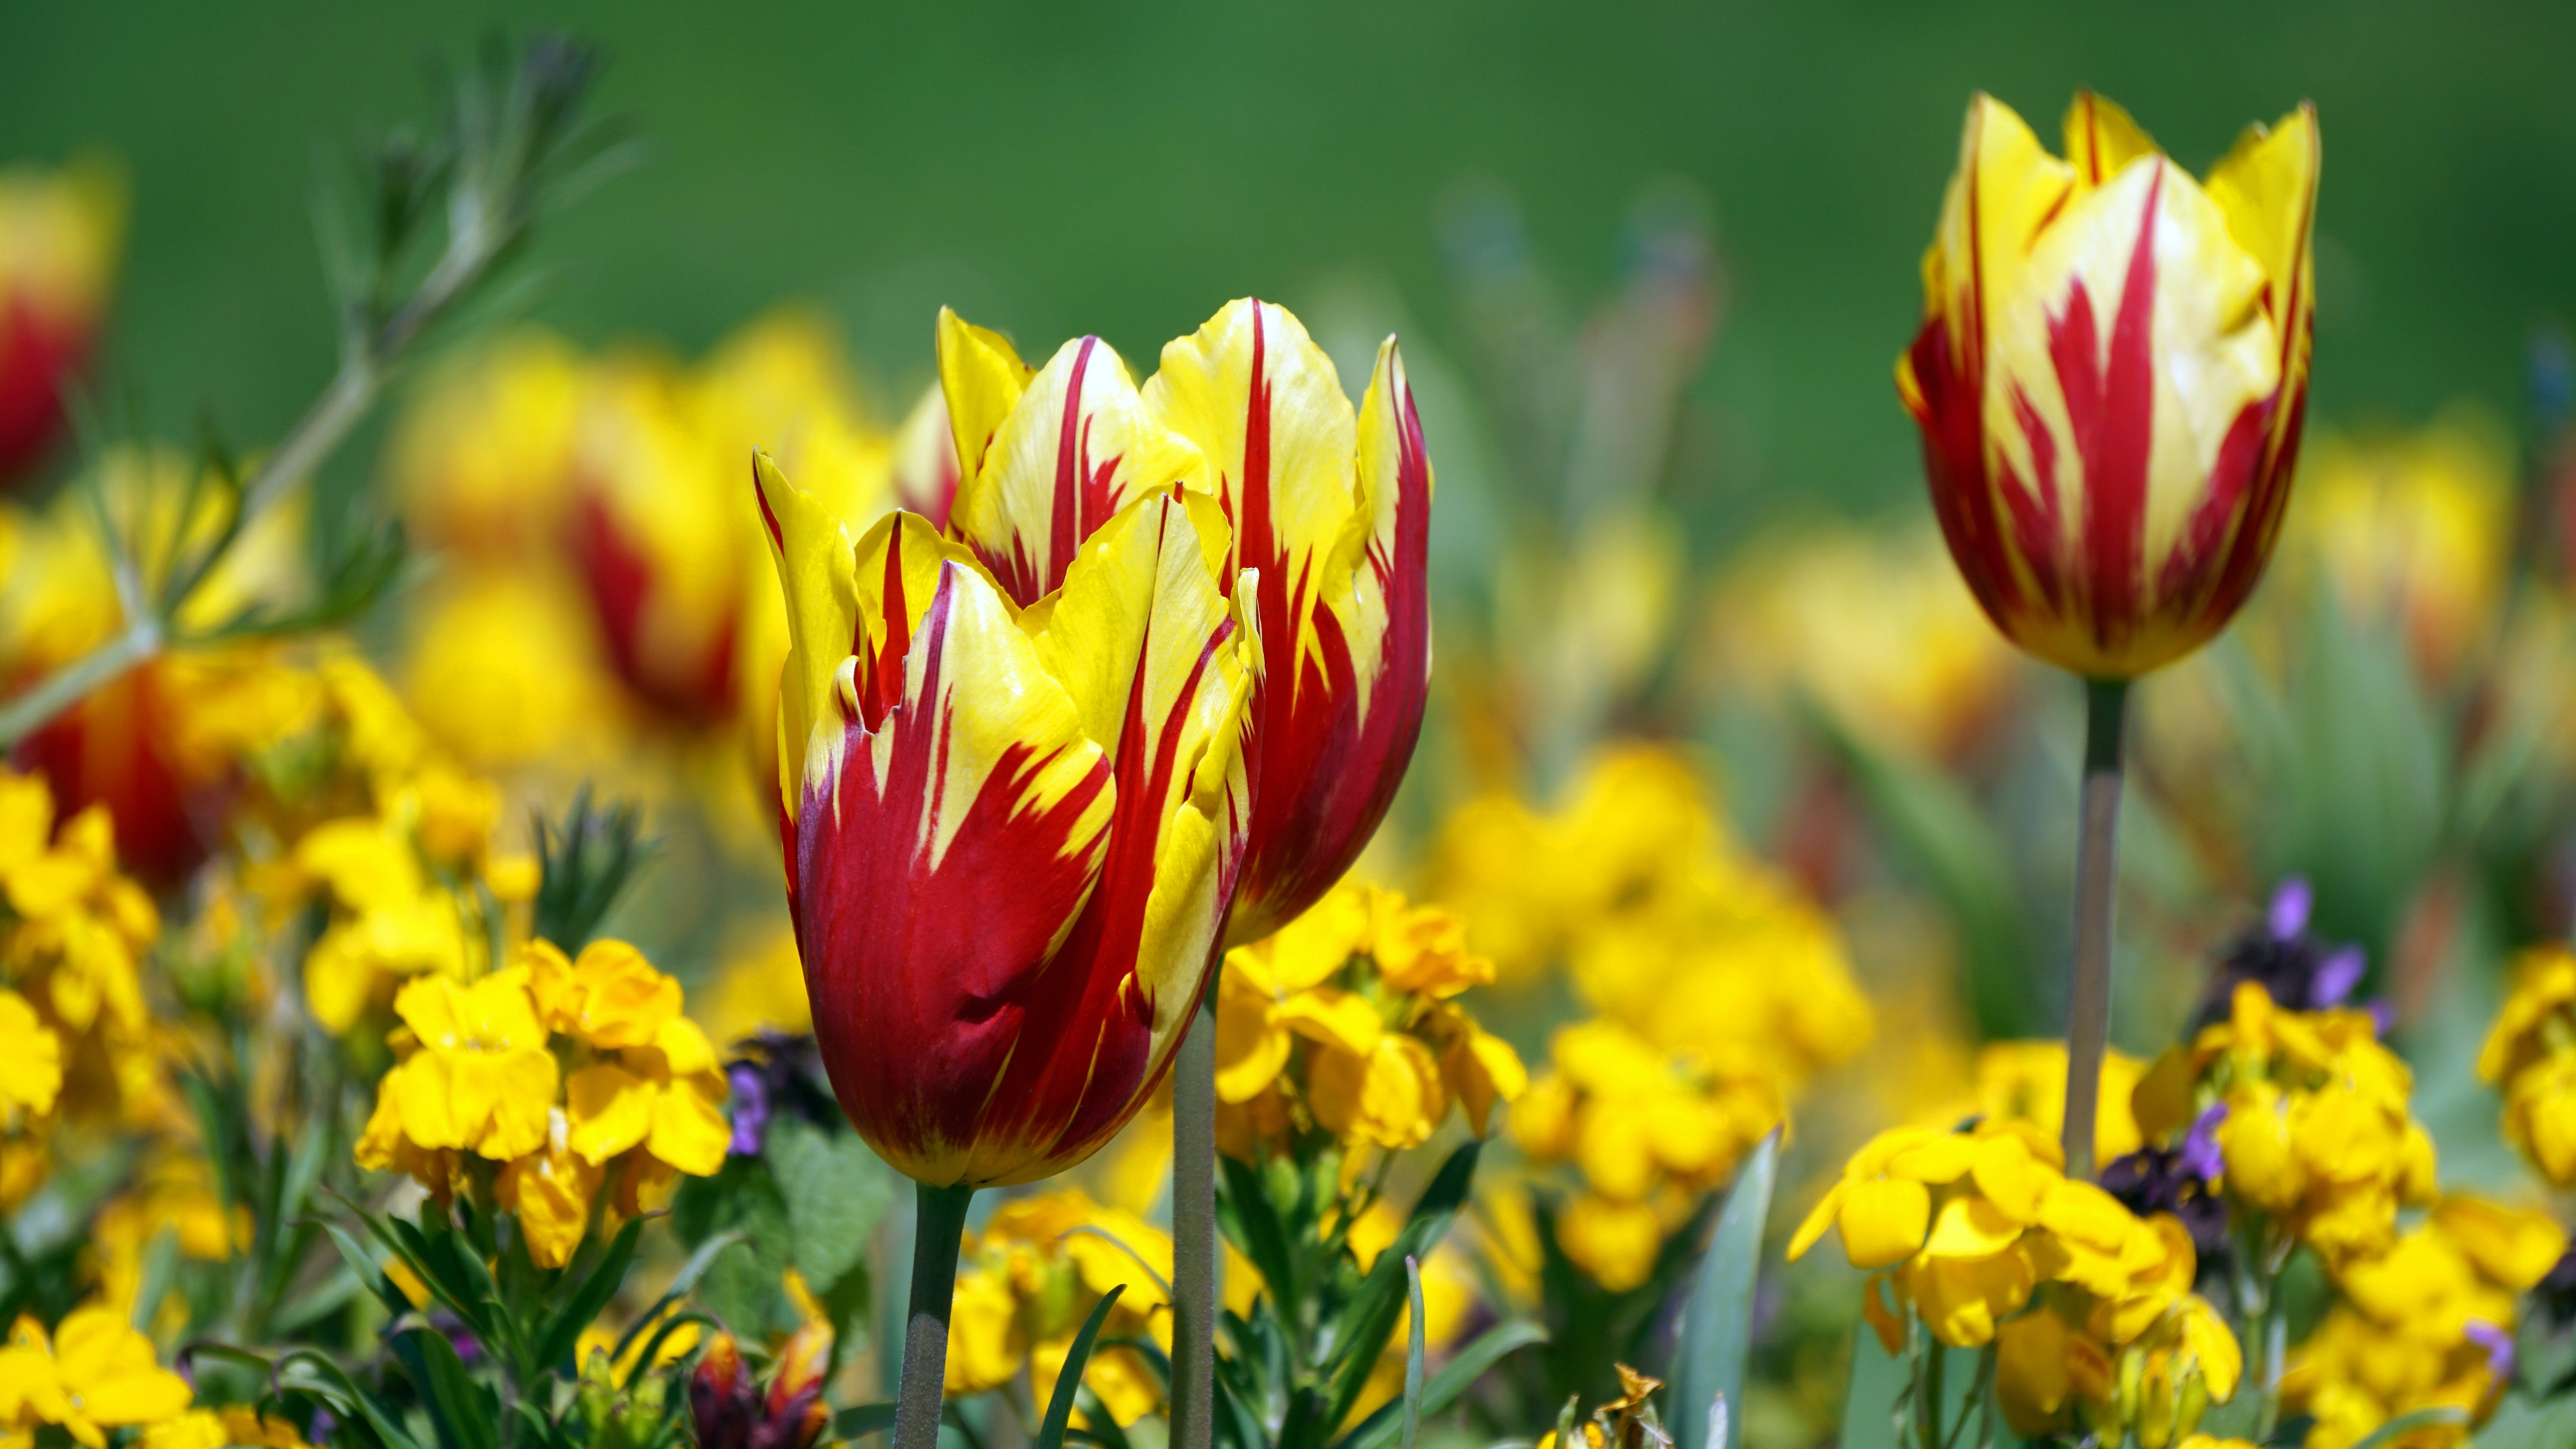 Red and Yellow Flowers during Daytime